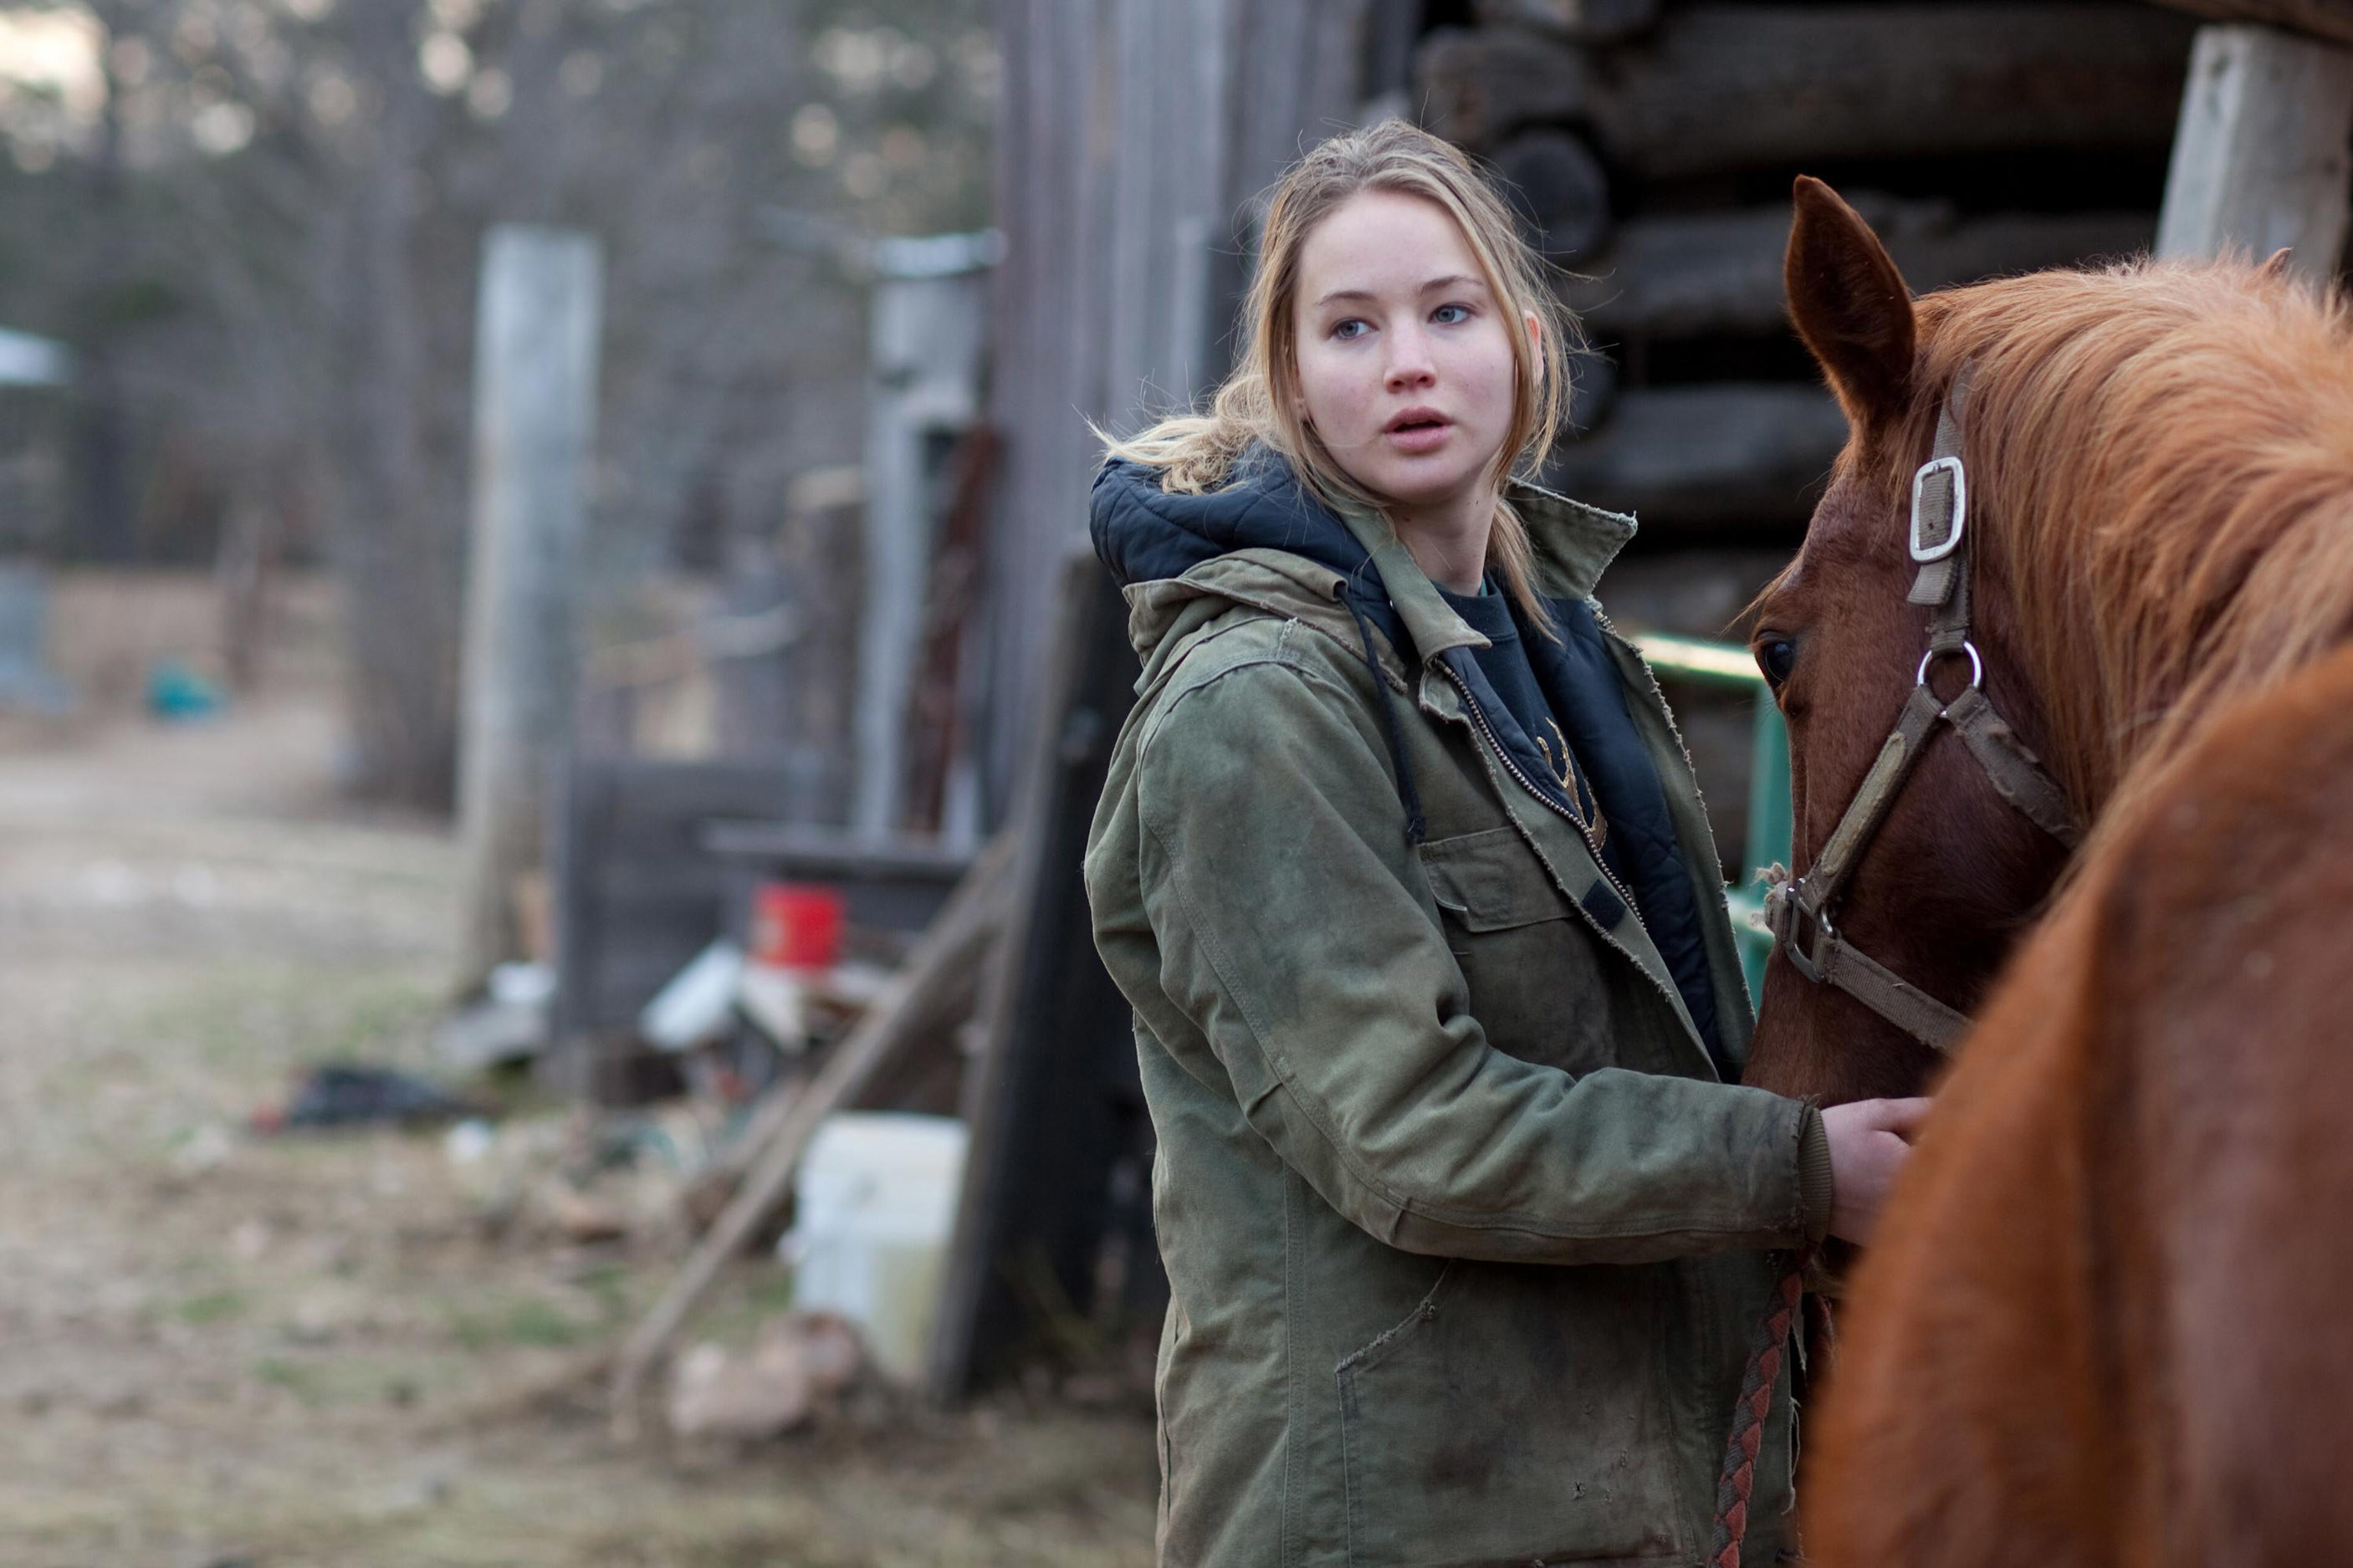 Jennifer in the film with a horse